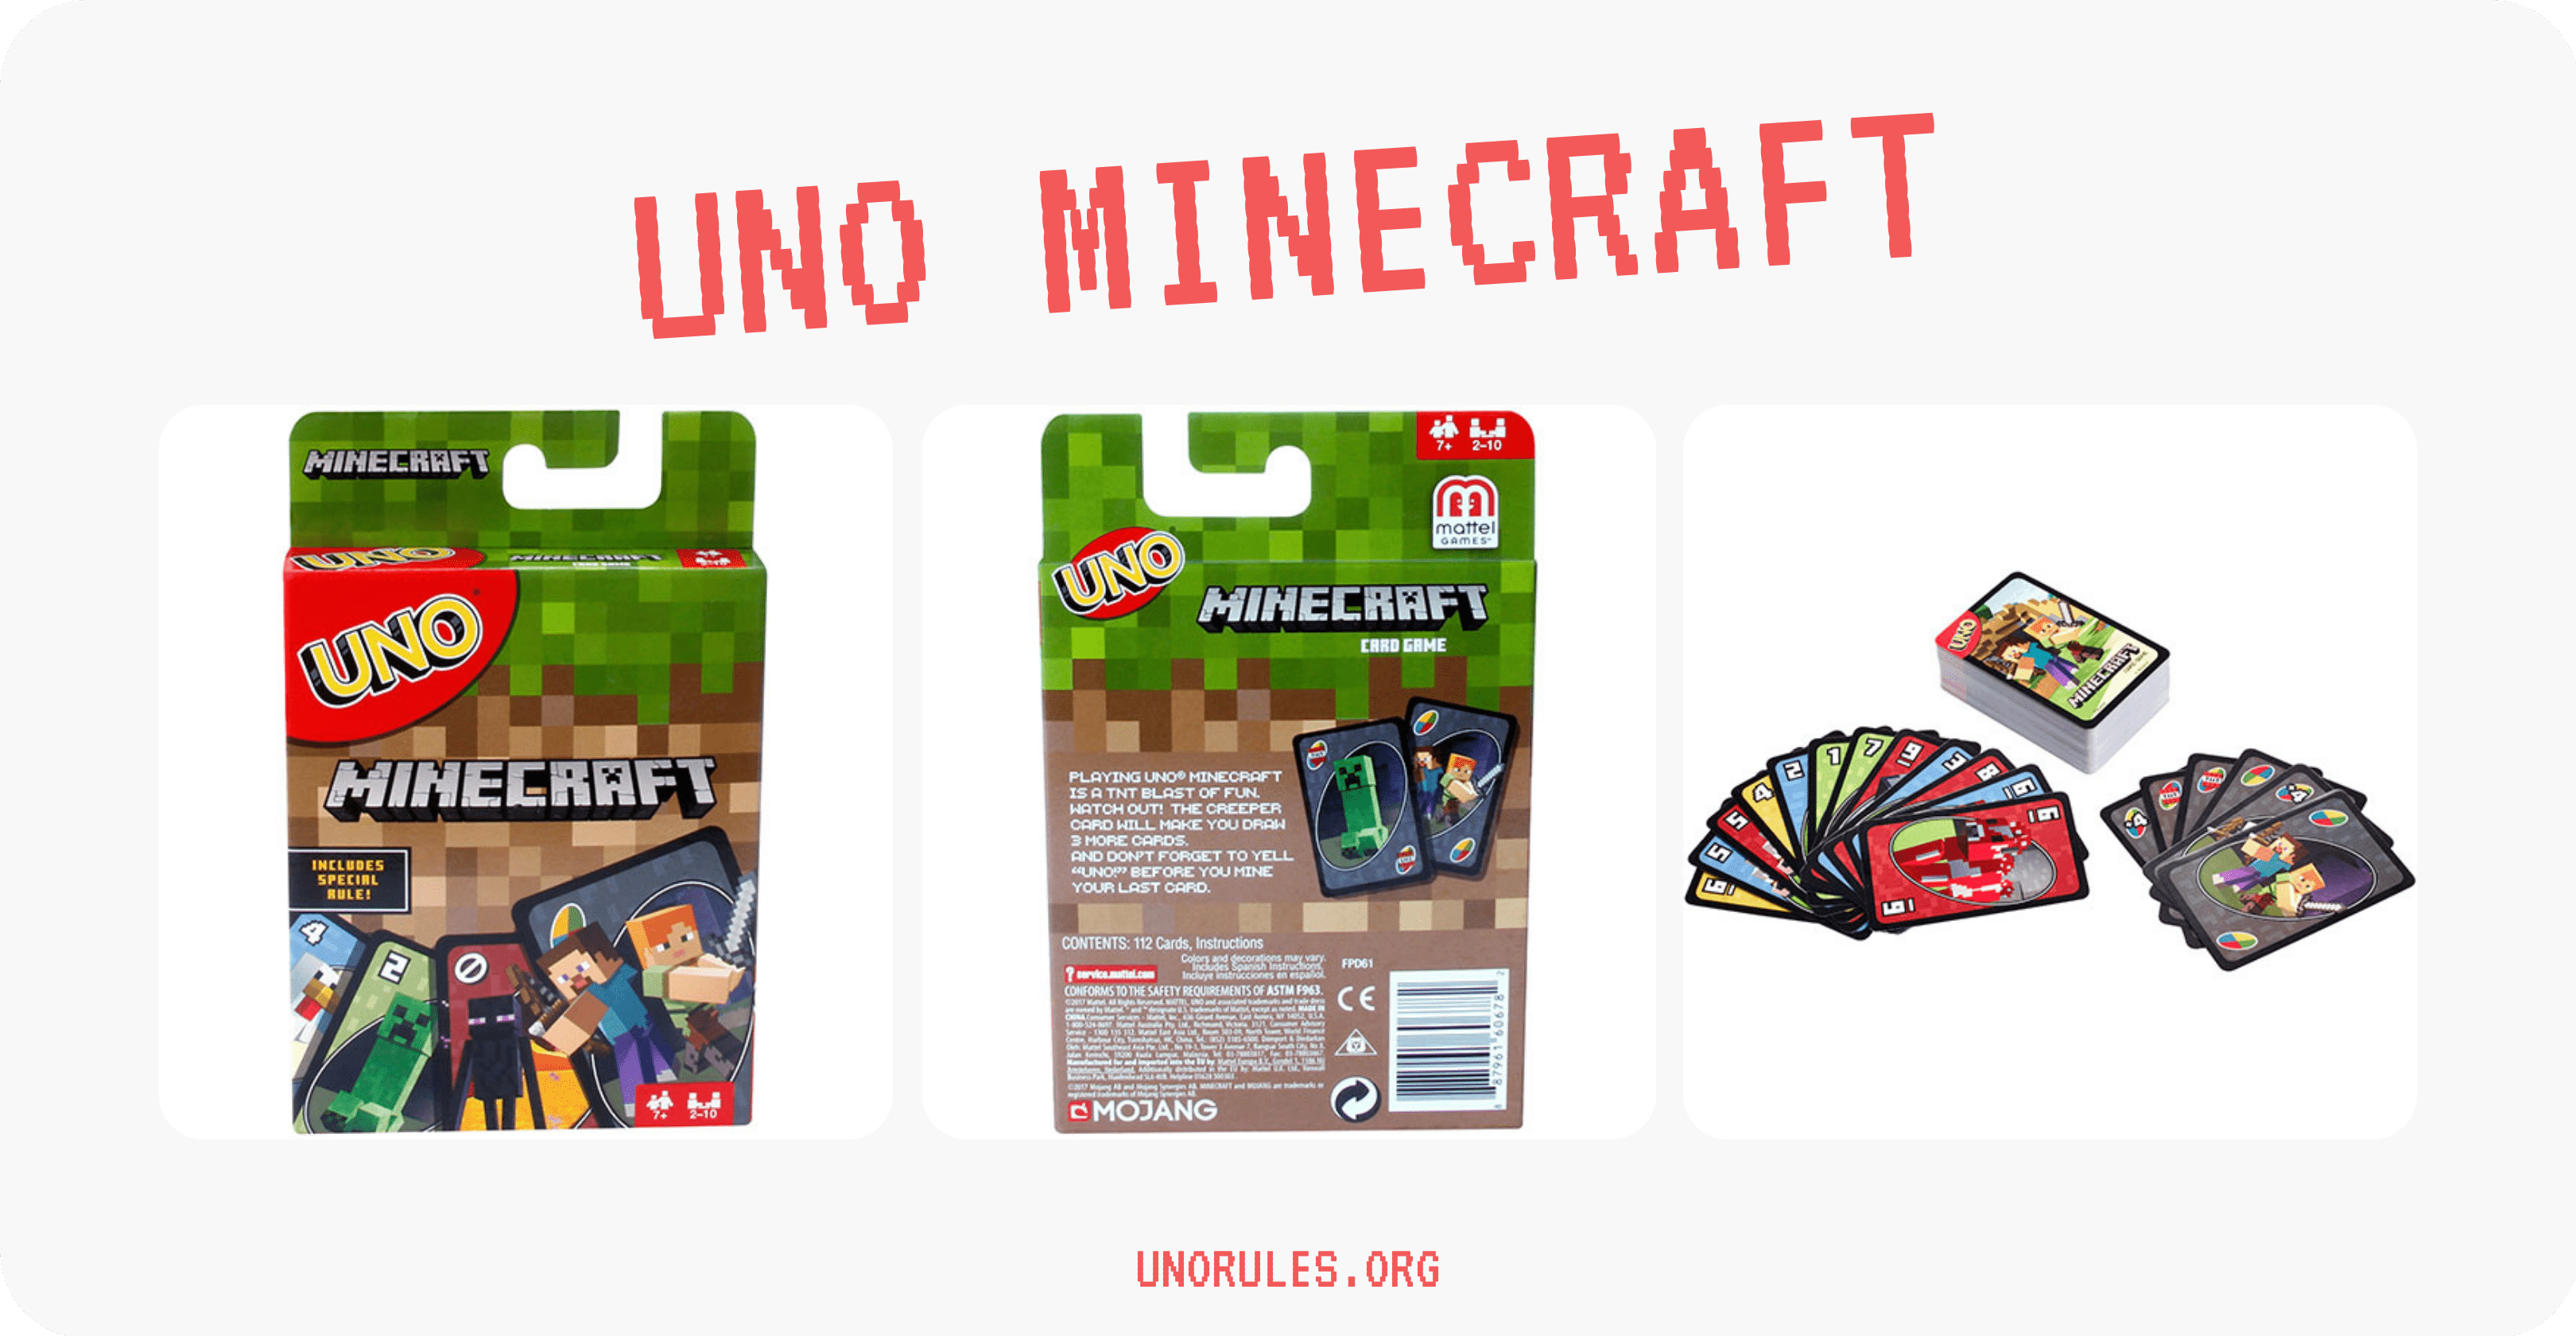 Minecraft Uno cards and package - Unorules.org